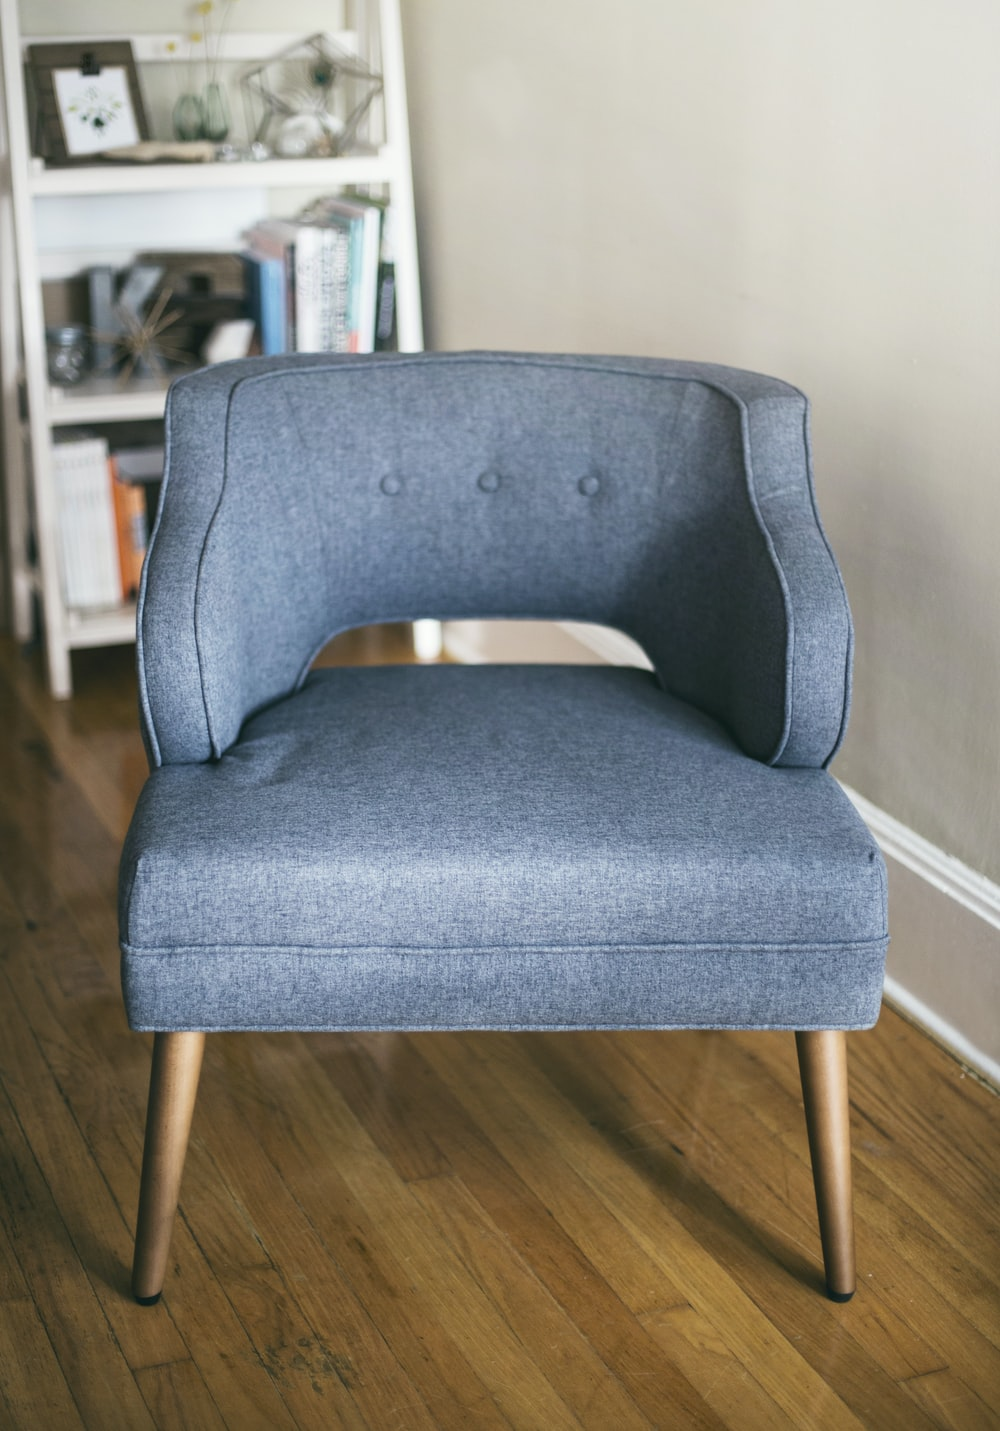 person taking photo of grey padded chair inside room